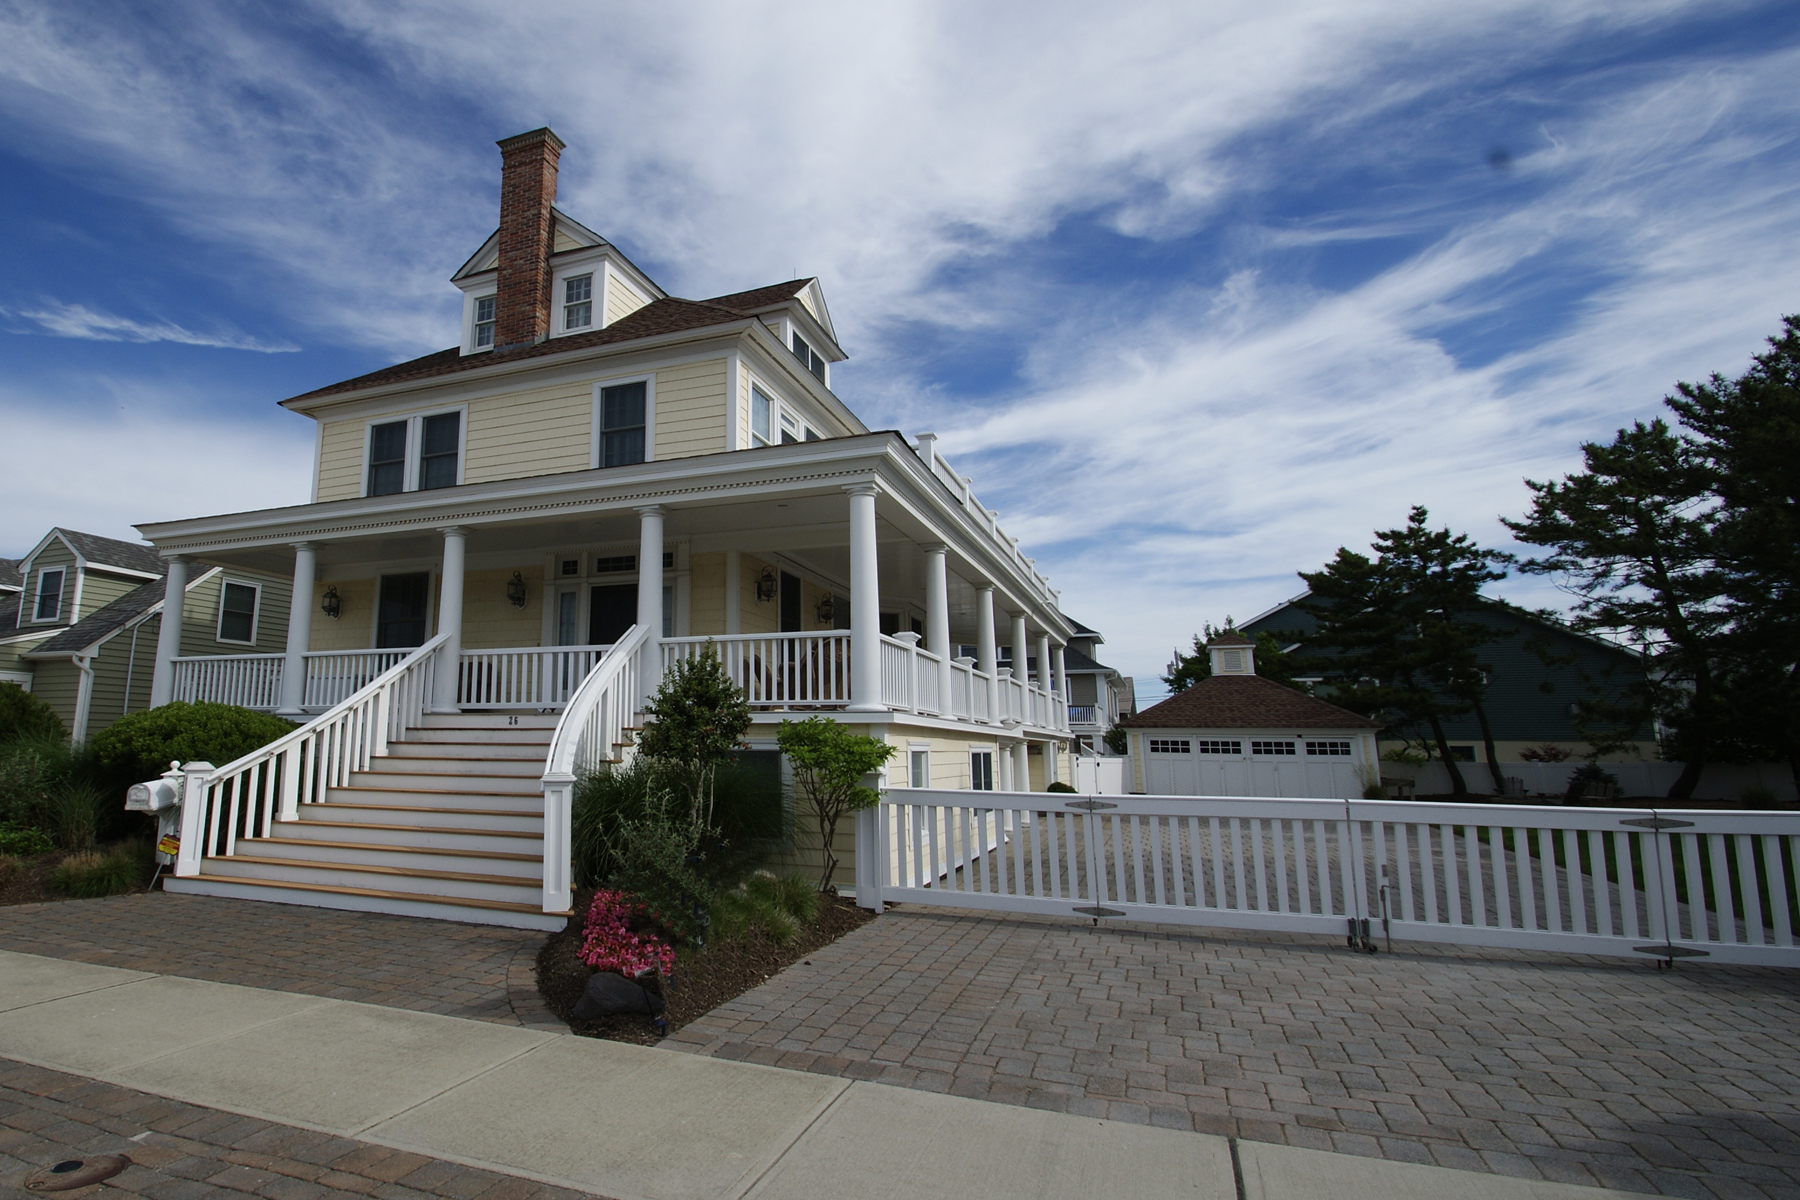 Single Family Home for Sale at Elegant Oceanblock Home - Exquisite Craftsmanship 26 7th Ave Seaside Park, New Jersey 08752 United States